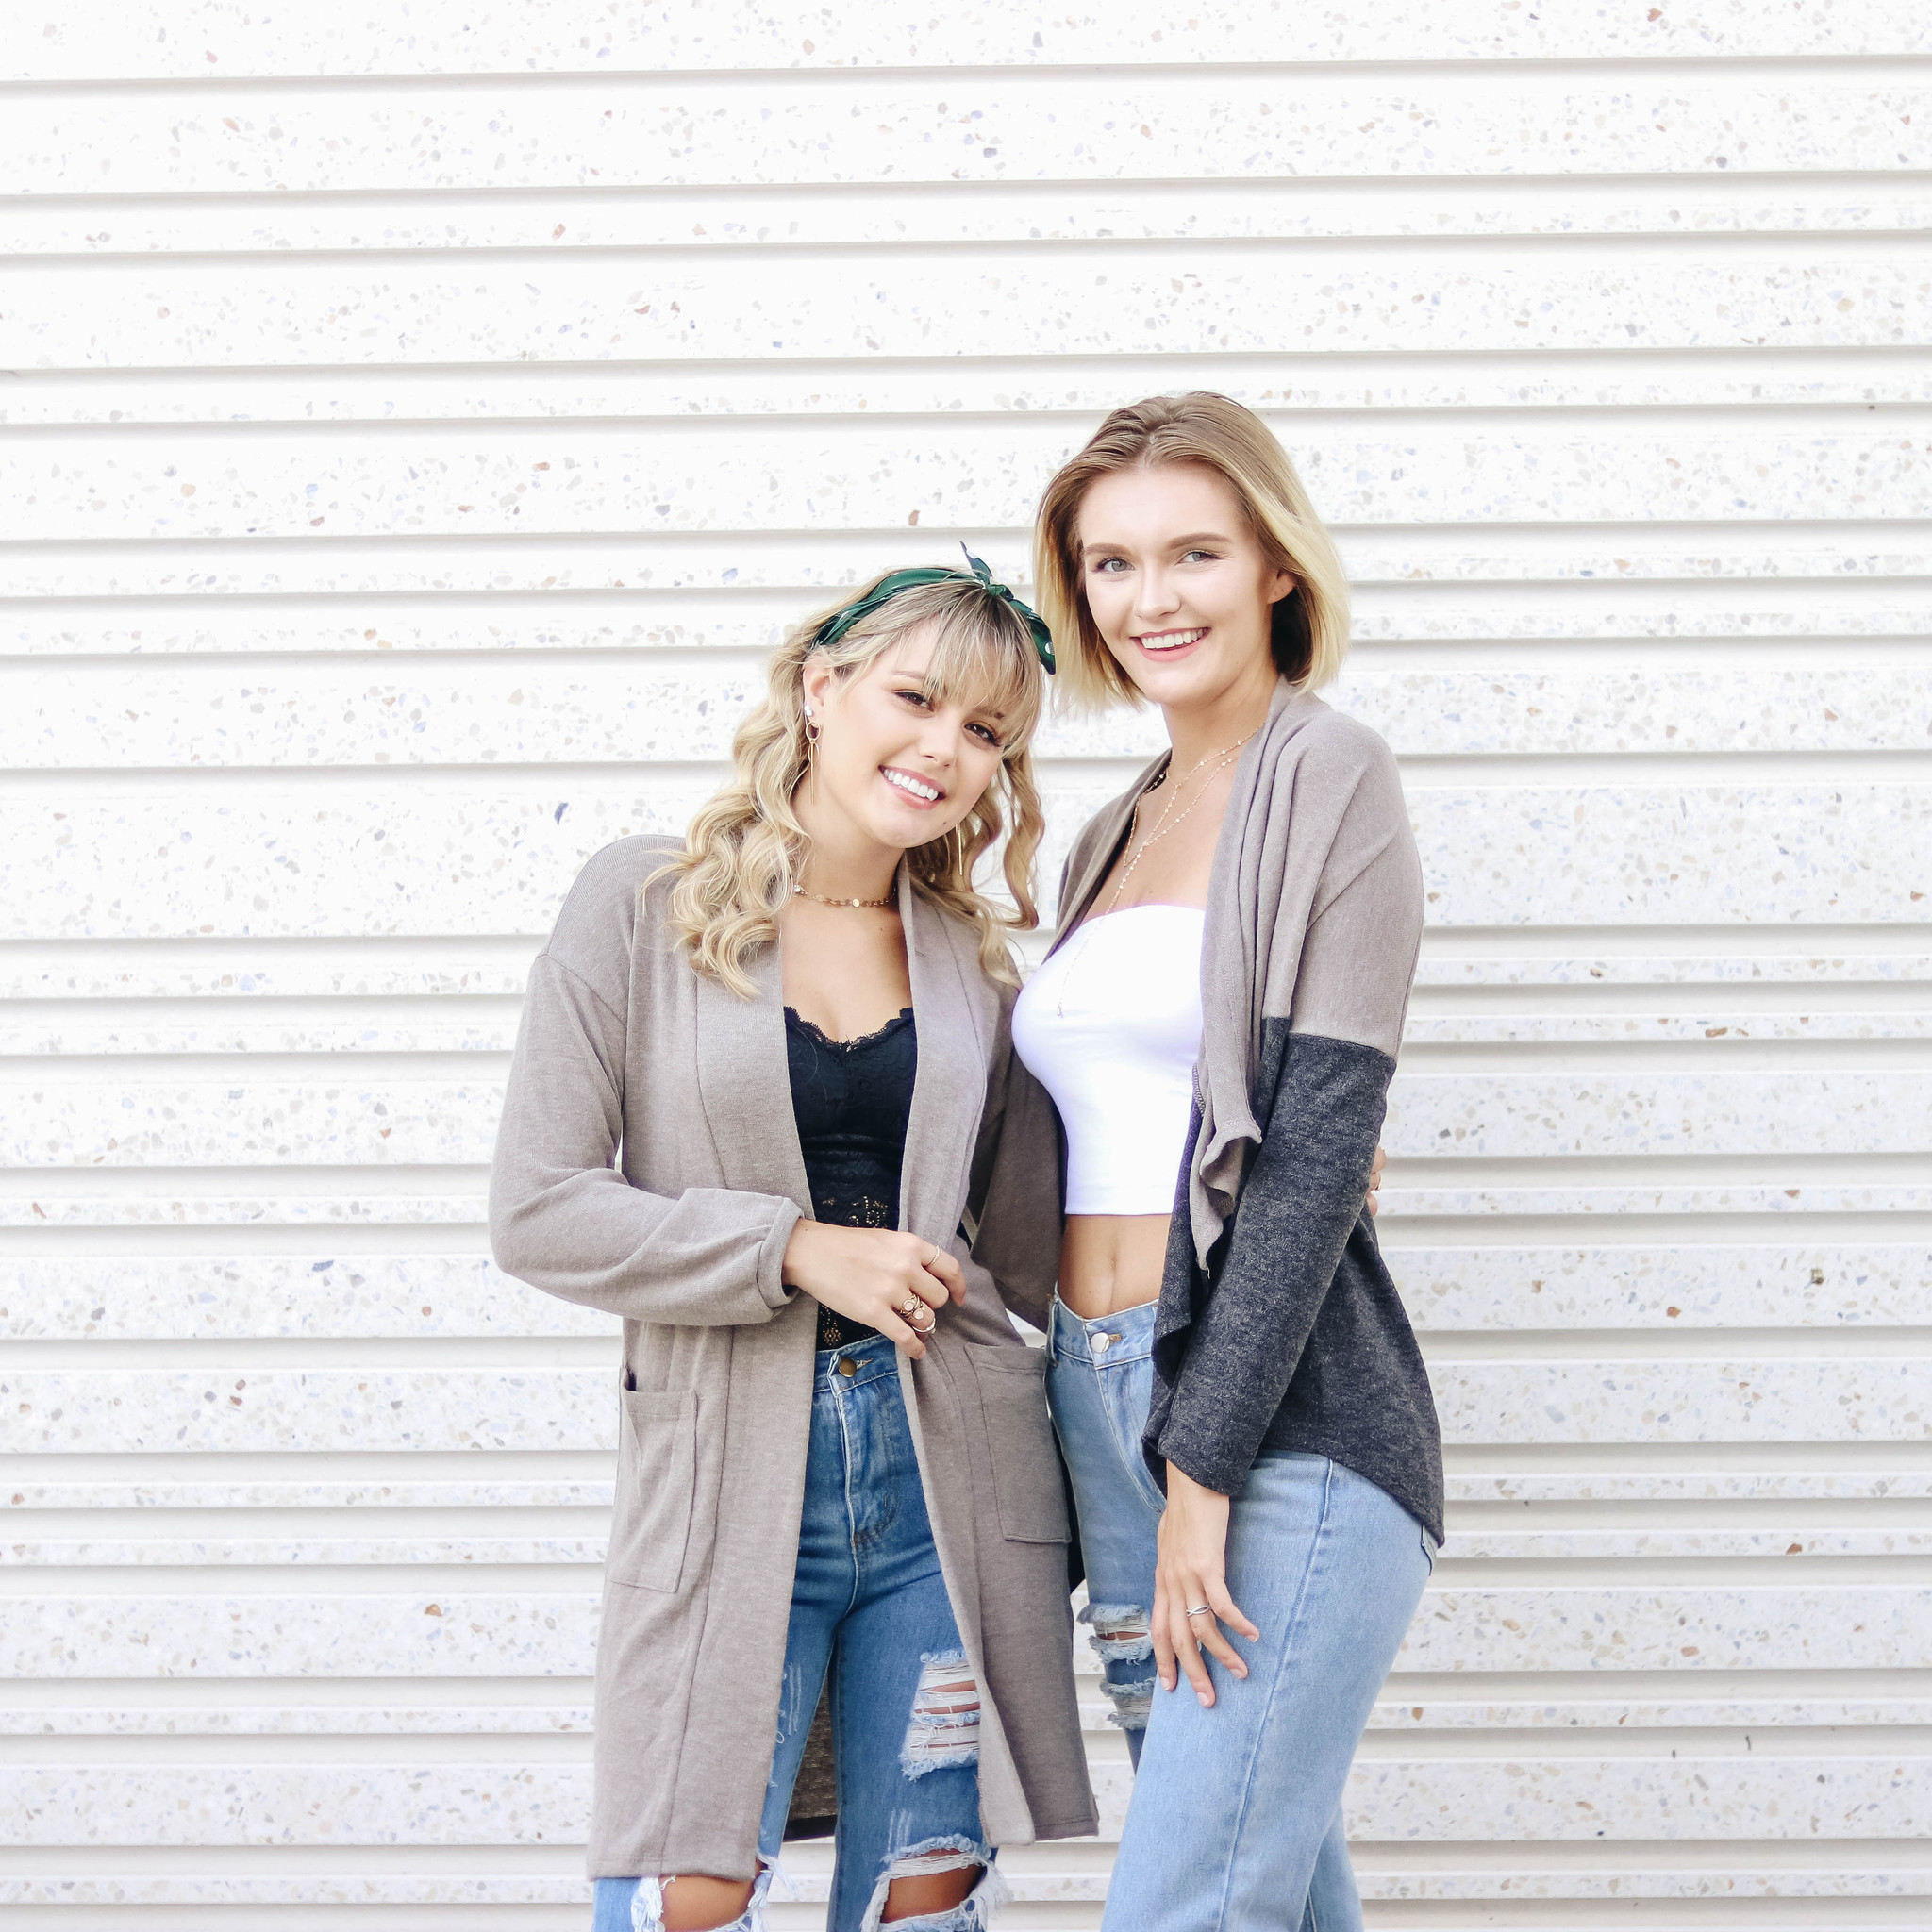 Neutral Color Cardigans